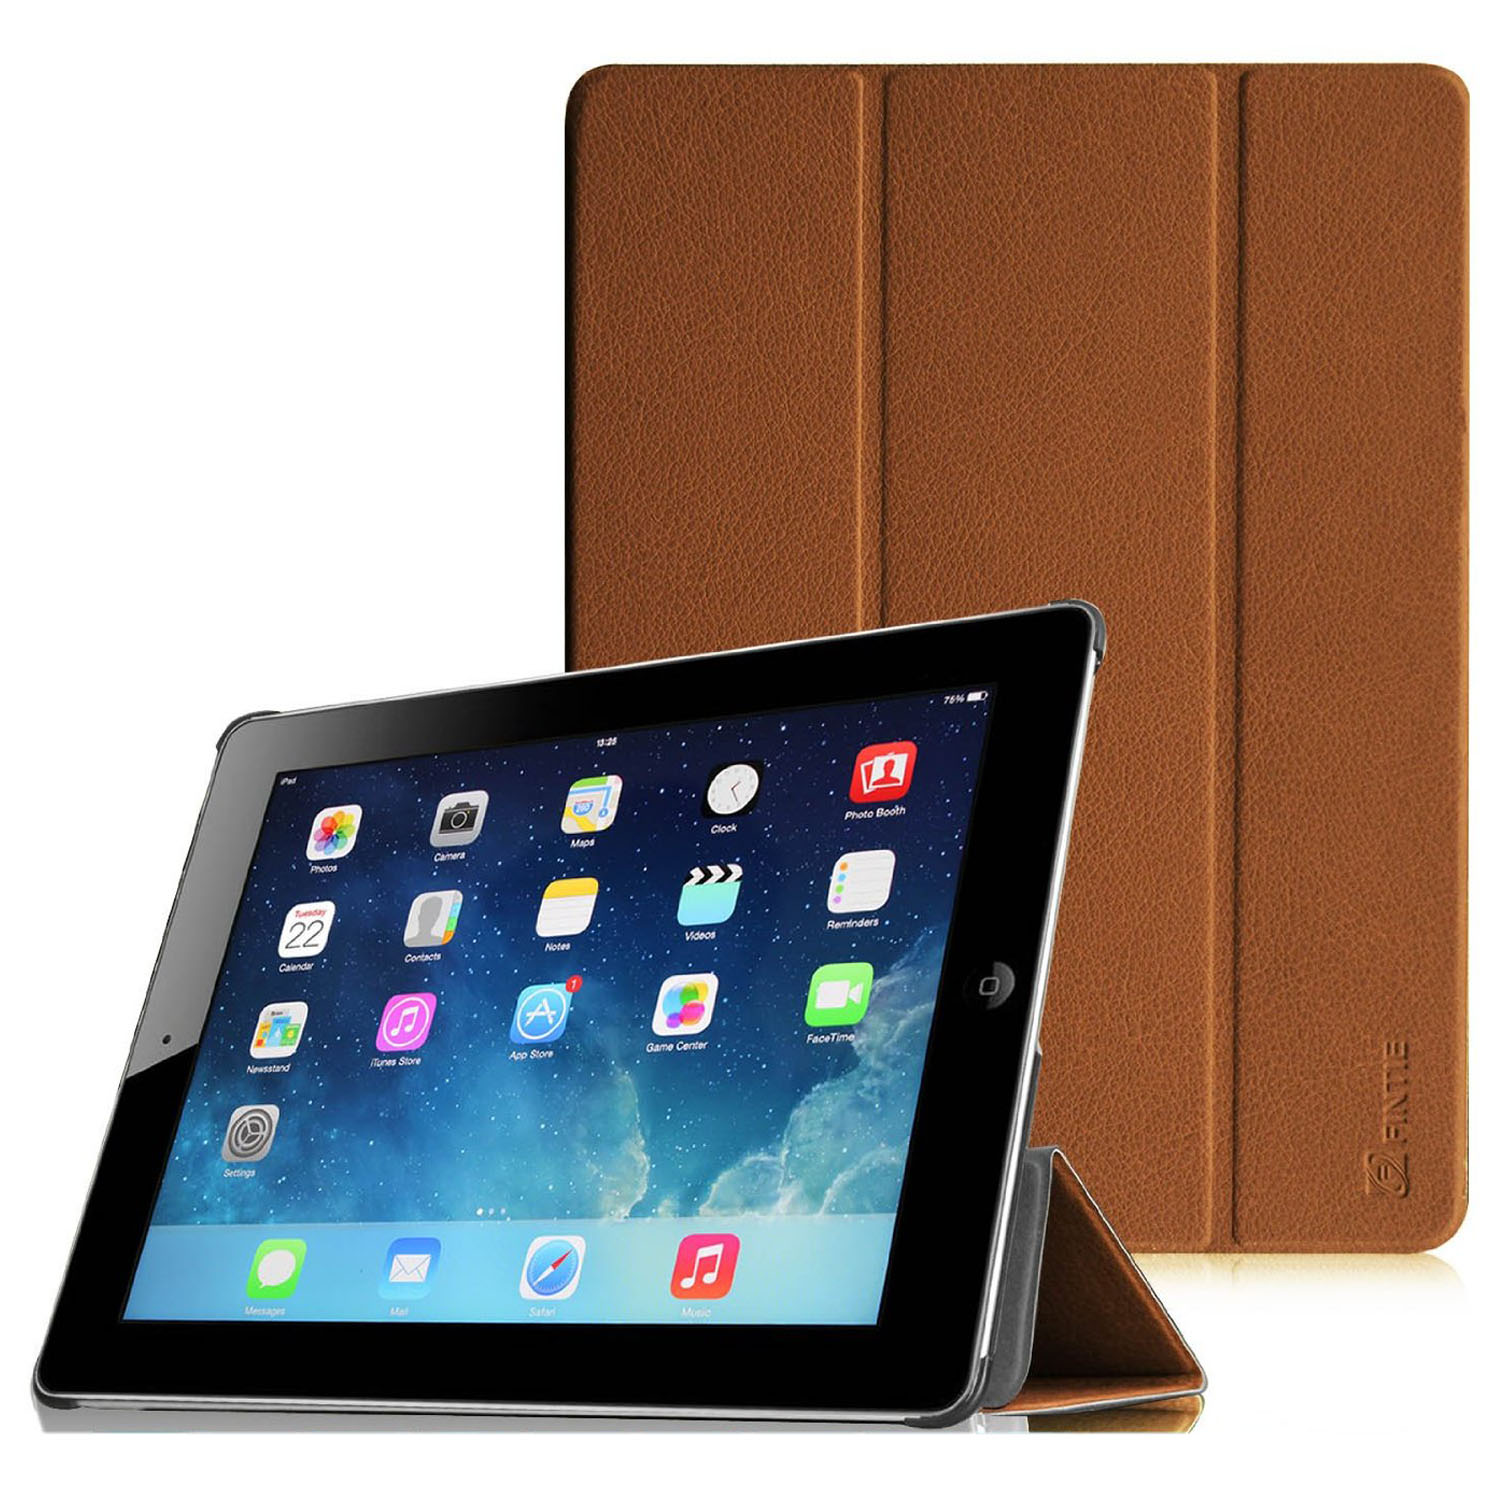 Fintie SmartShell Case for Apple iPad 4th Generation with Retina Display, iPad 3 & iPad 2, Brown